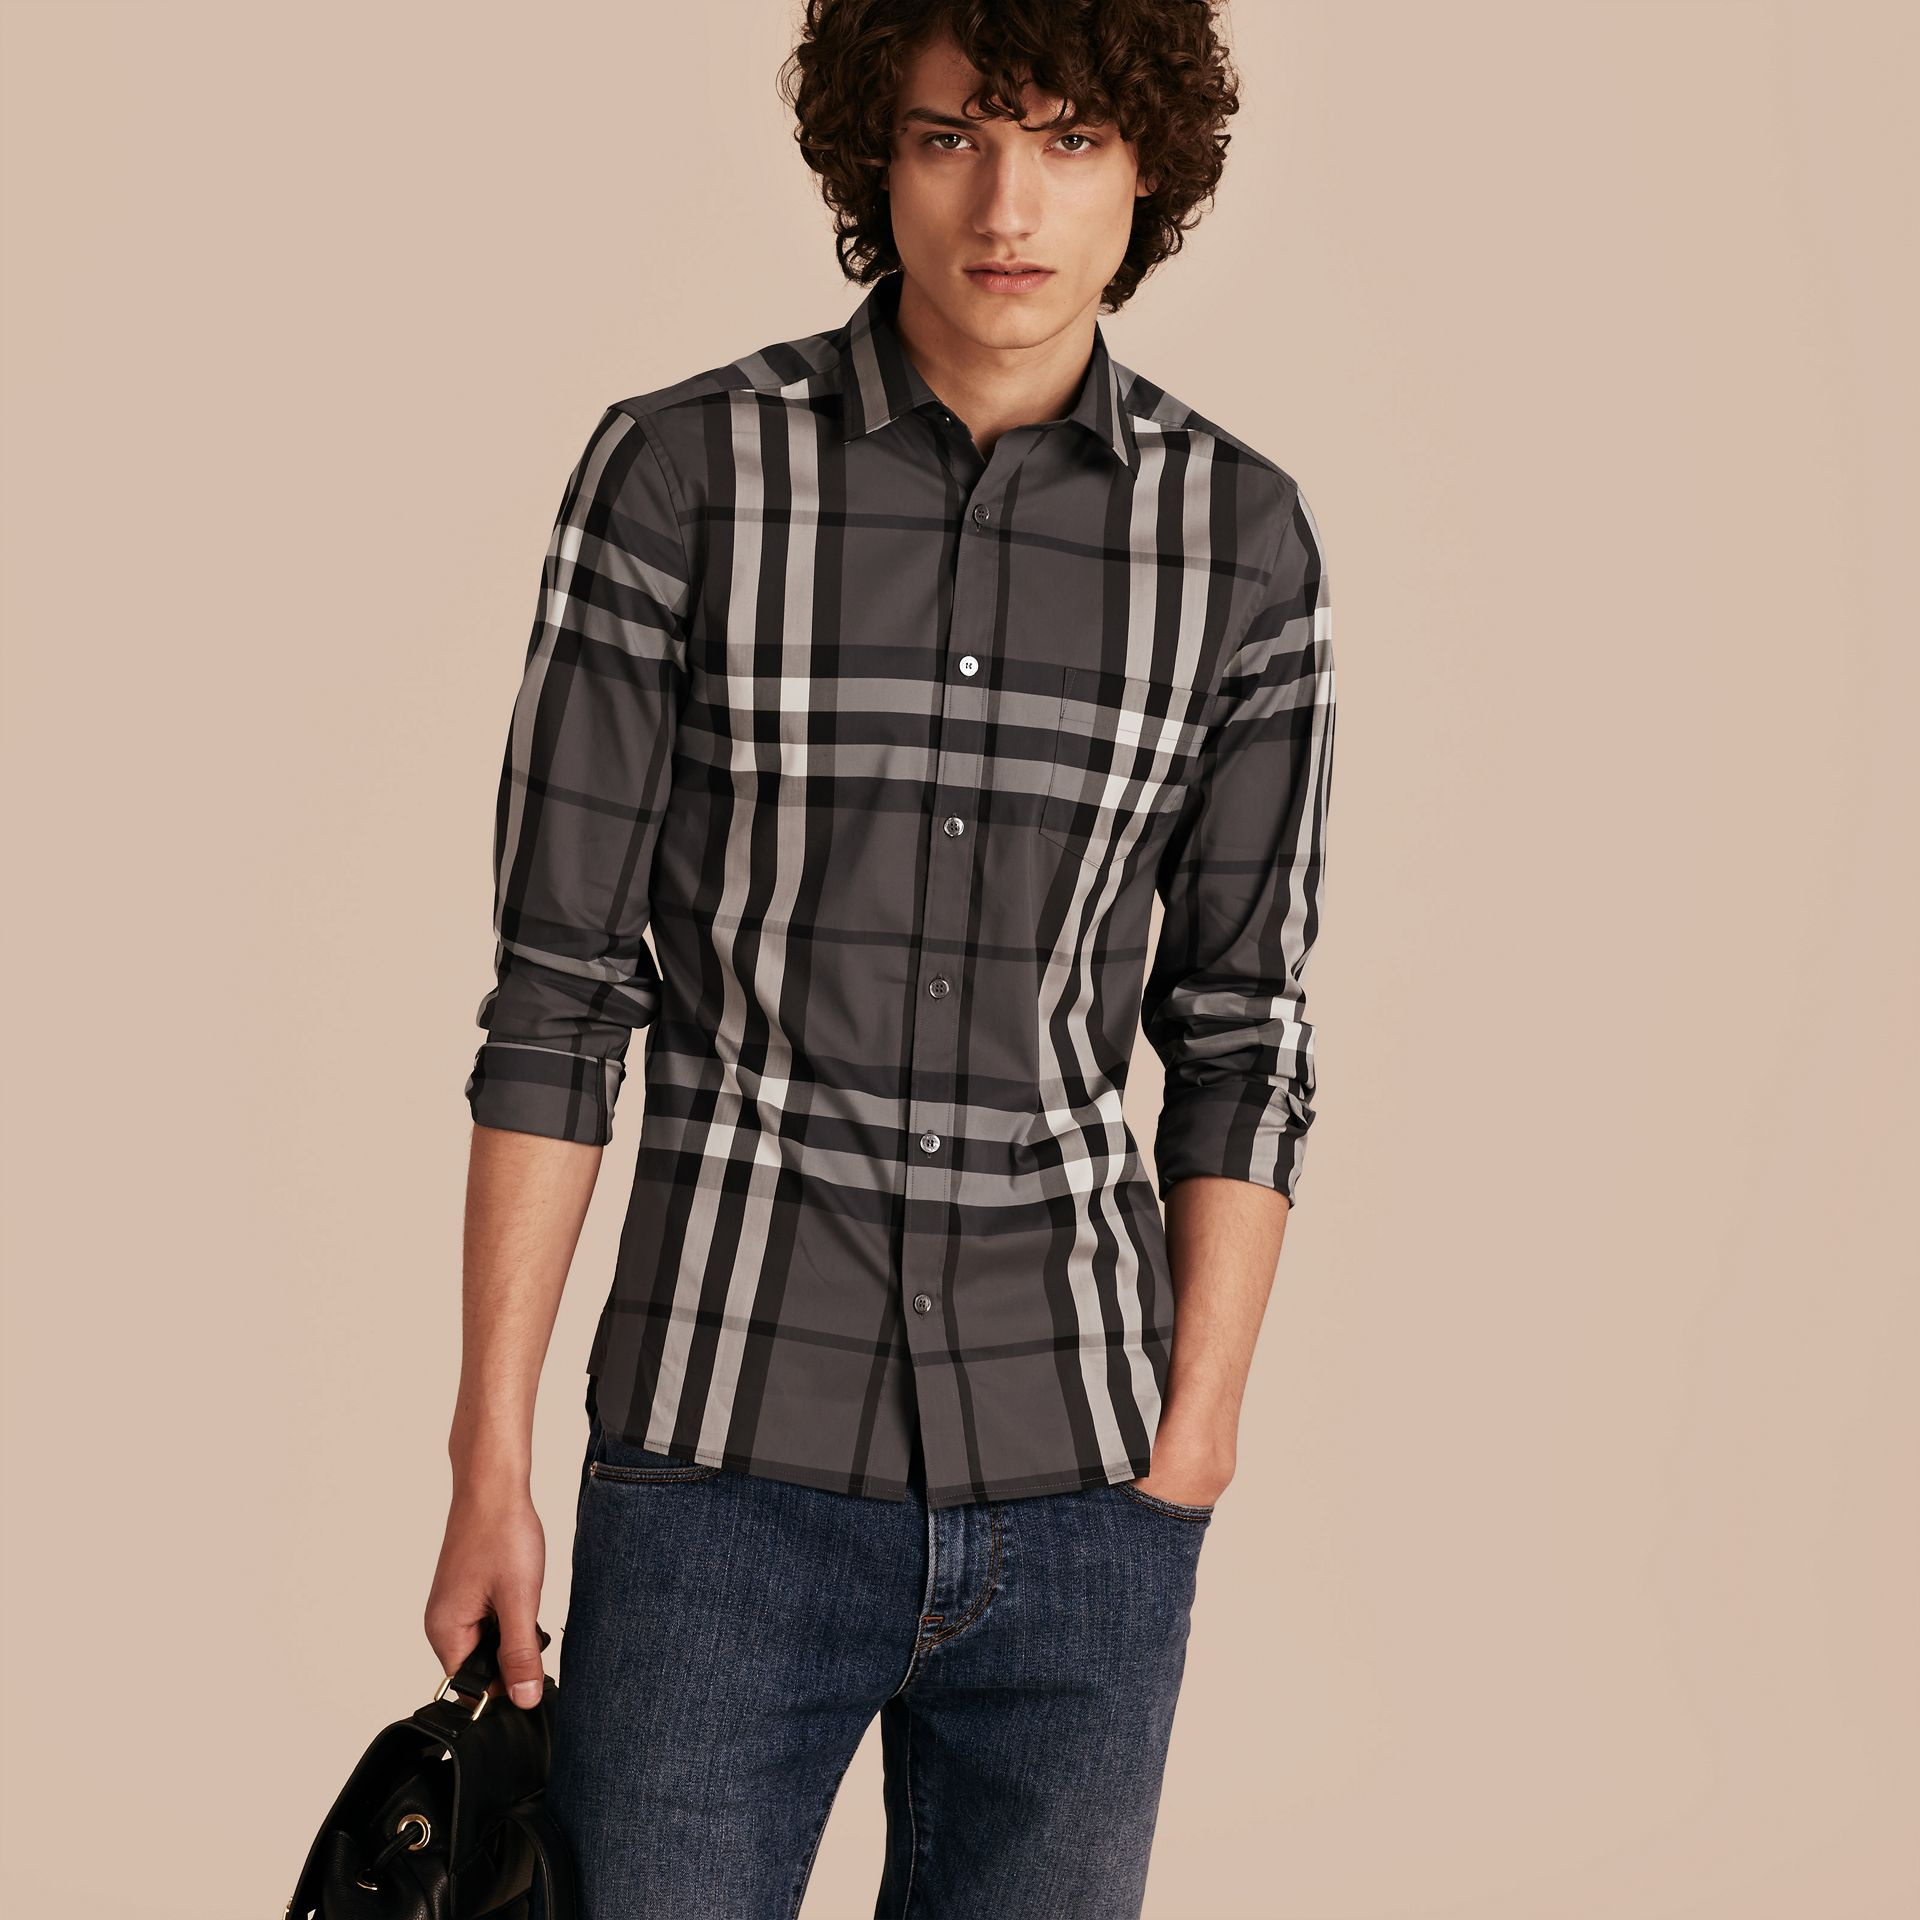 Chemise en coton extensible à motif check (Anthracite) - Homme | Burberry - photo de la galerie 6